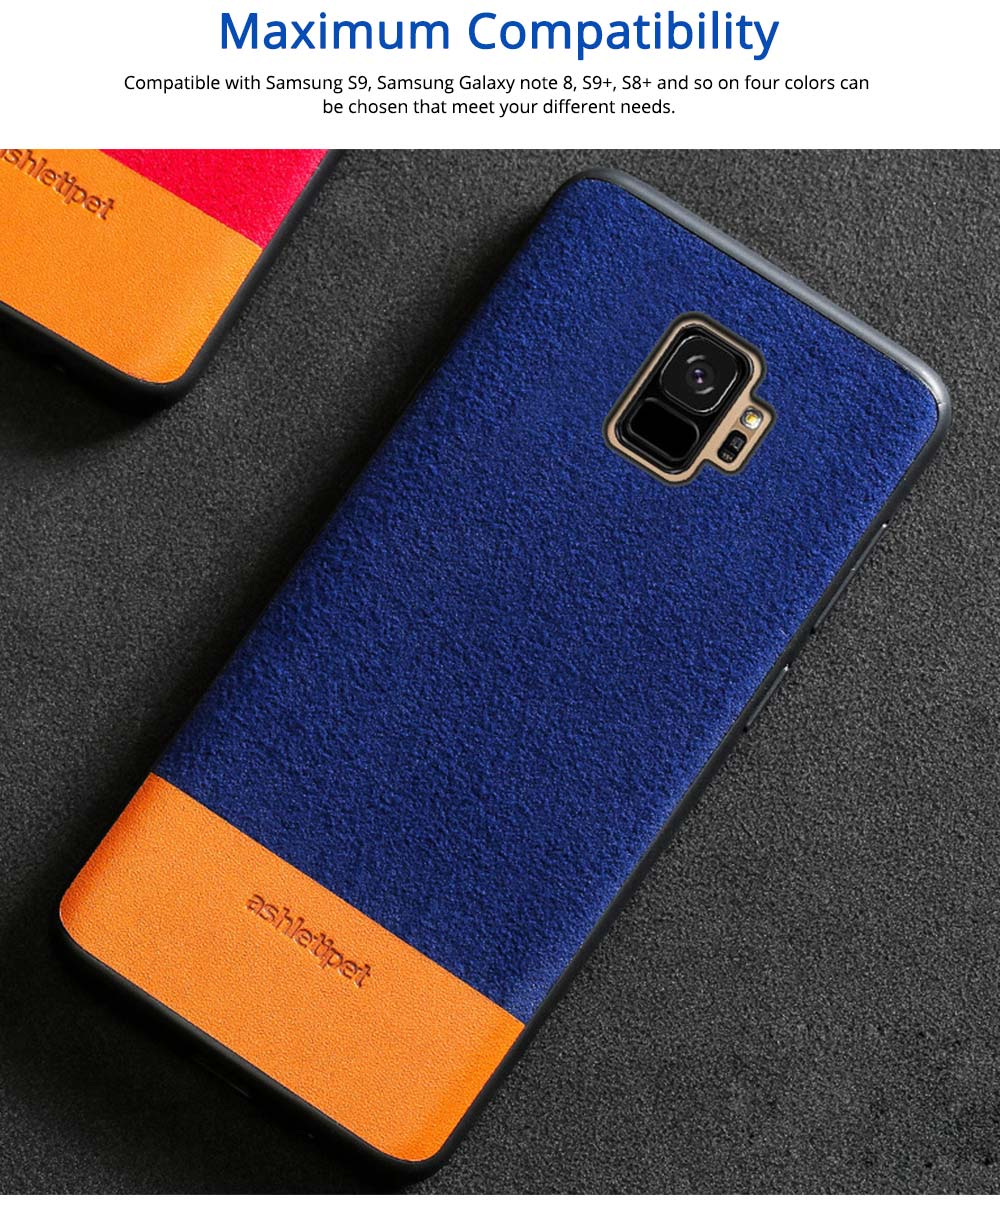 Samsung Genuine Leather Case, Creative Color Matching Elegant Phone Protective Case for Samsung note8, S7 edge, S9 12